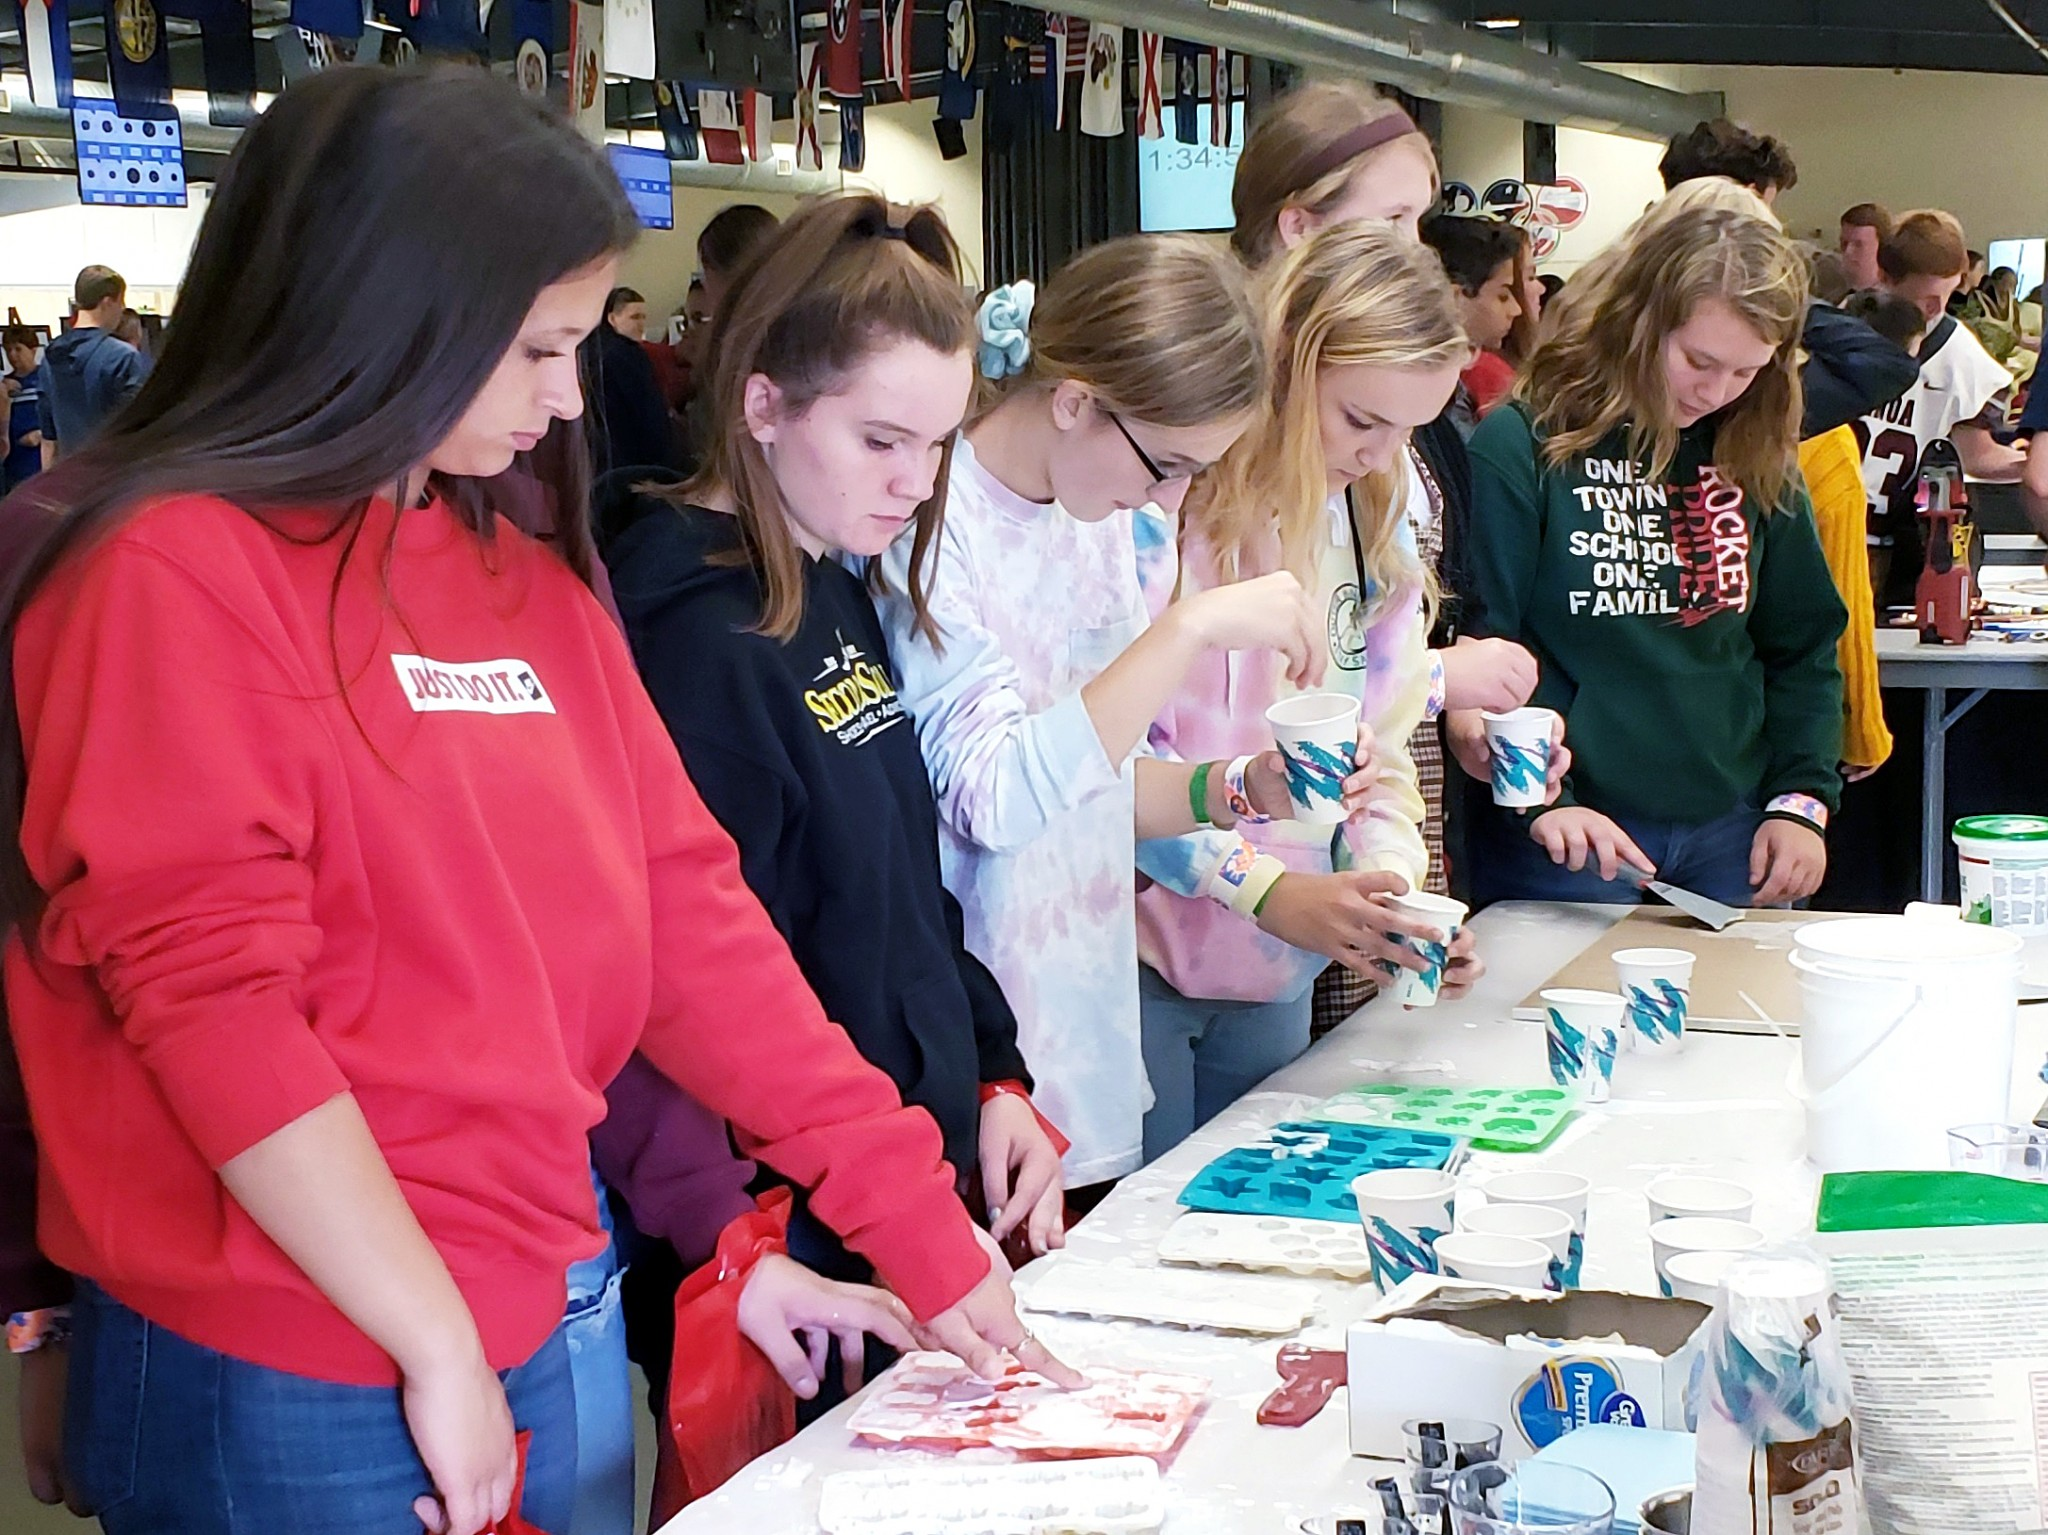 During the Ottawa County Business Advisory Council's annual Career Showcase event, Ottawa County students visiting U.S. Gypsum participated in hands-on activities, asked questions and learn more about career opportunities. (Submitted photo)